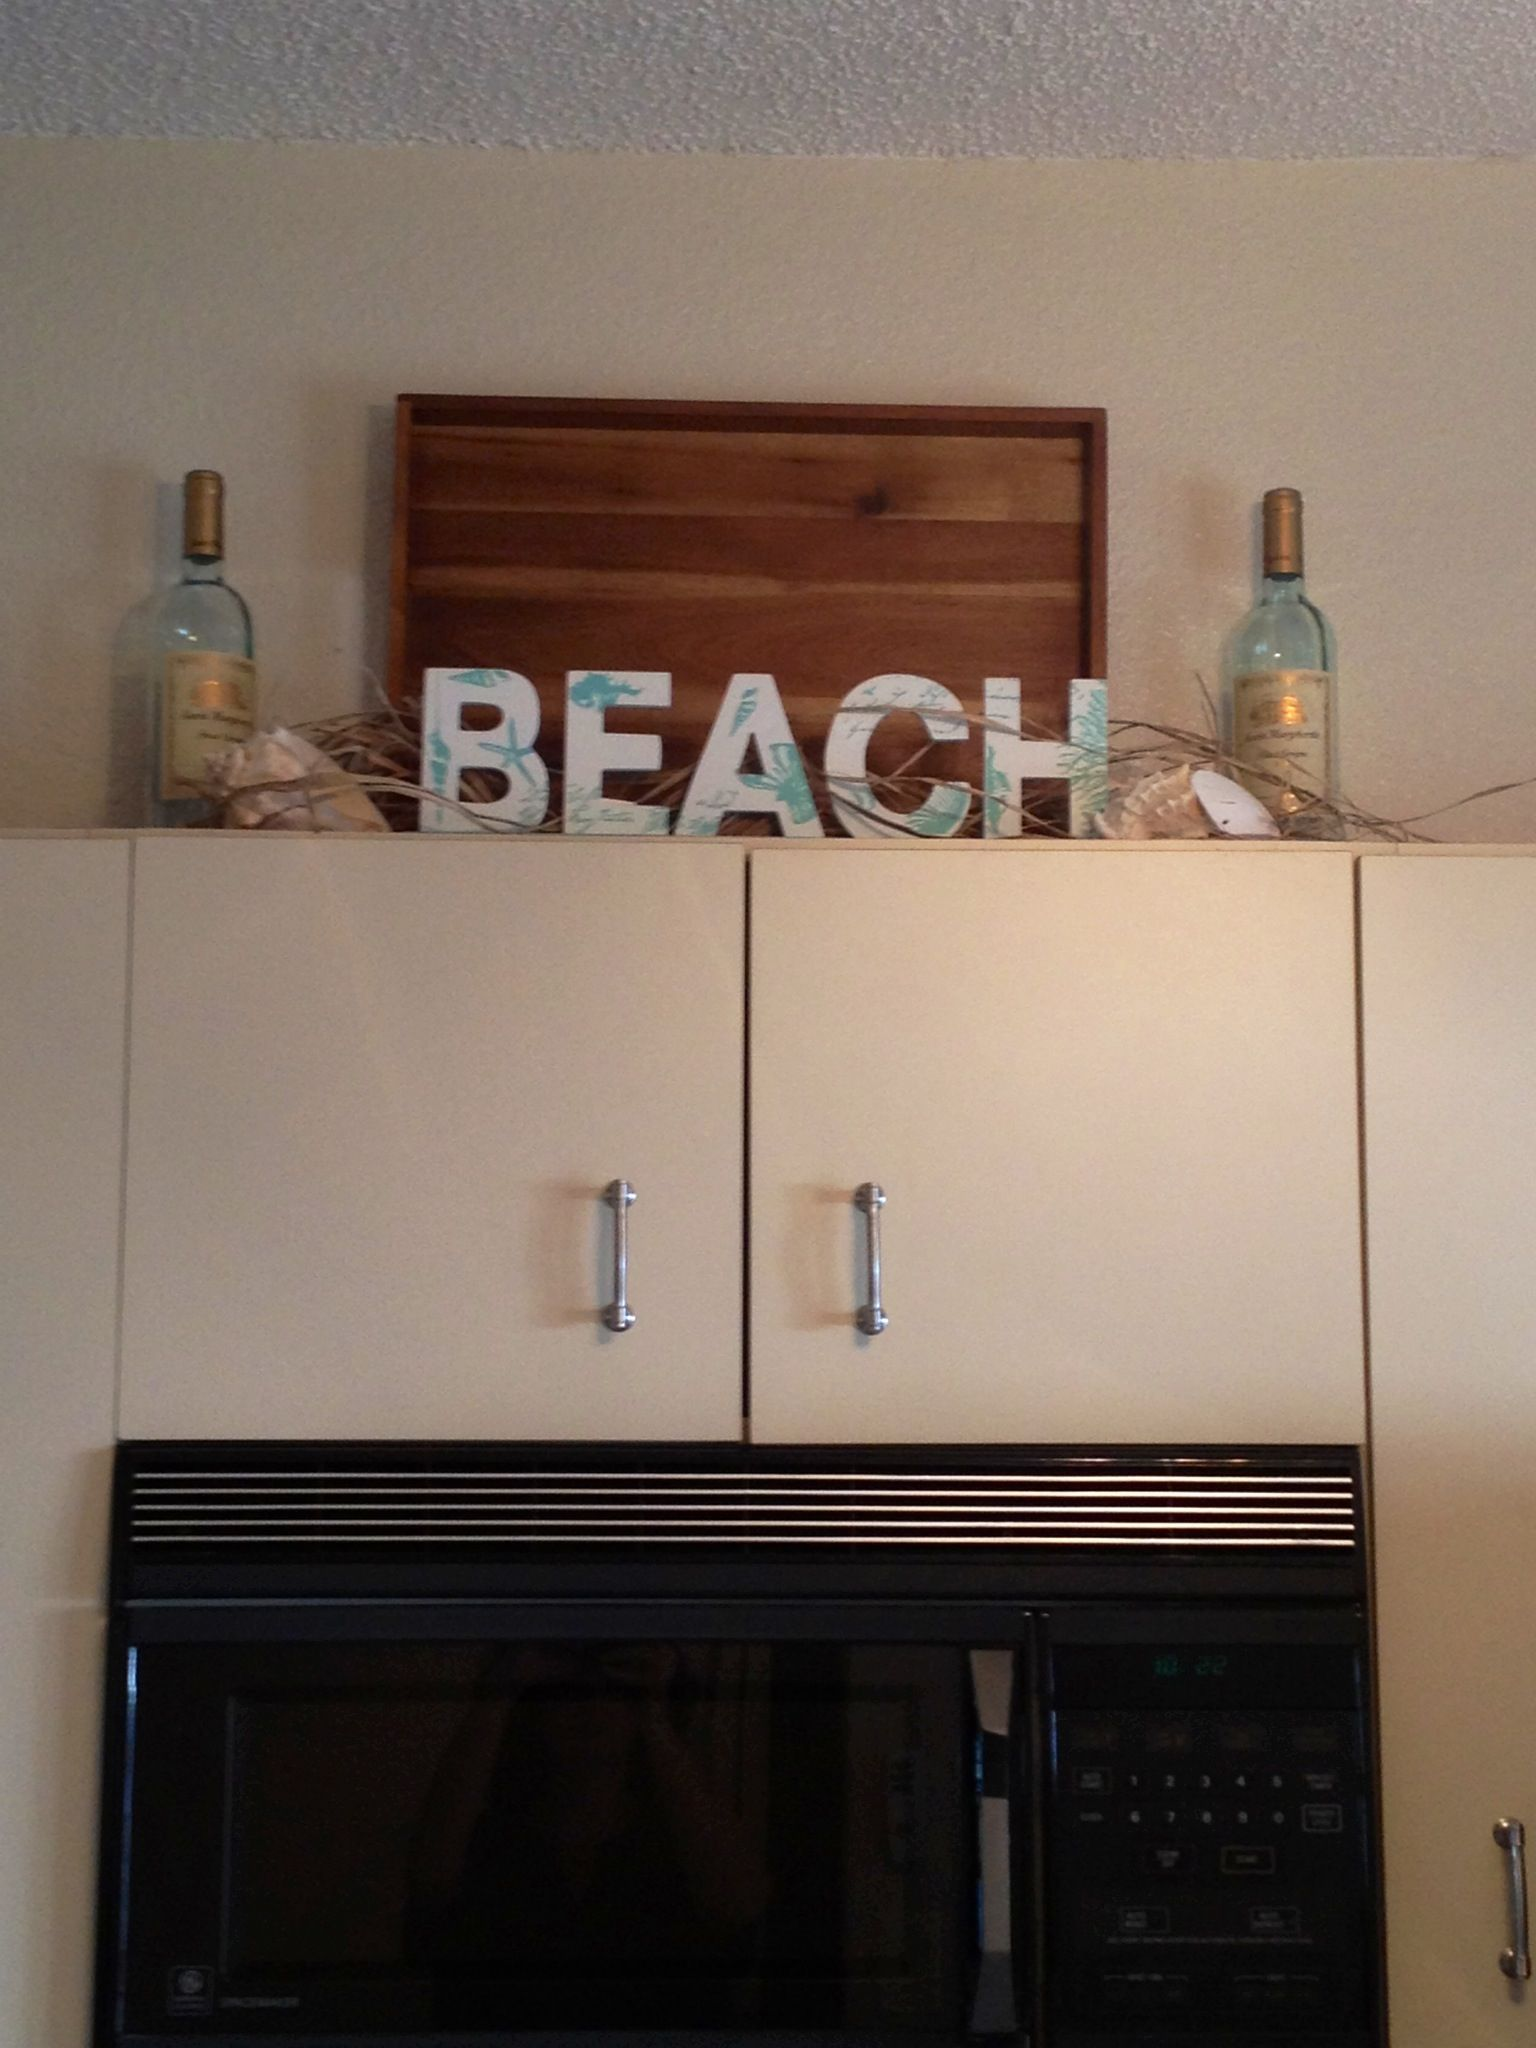 Decorating Ideas For Kitchen Cabinets Beach Decorating Idea For Above The Kitchen Cabinets